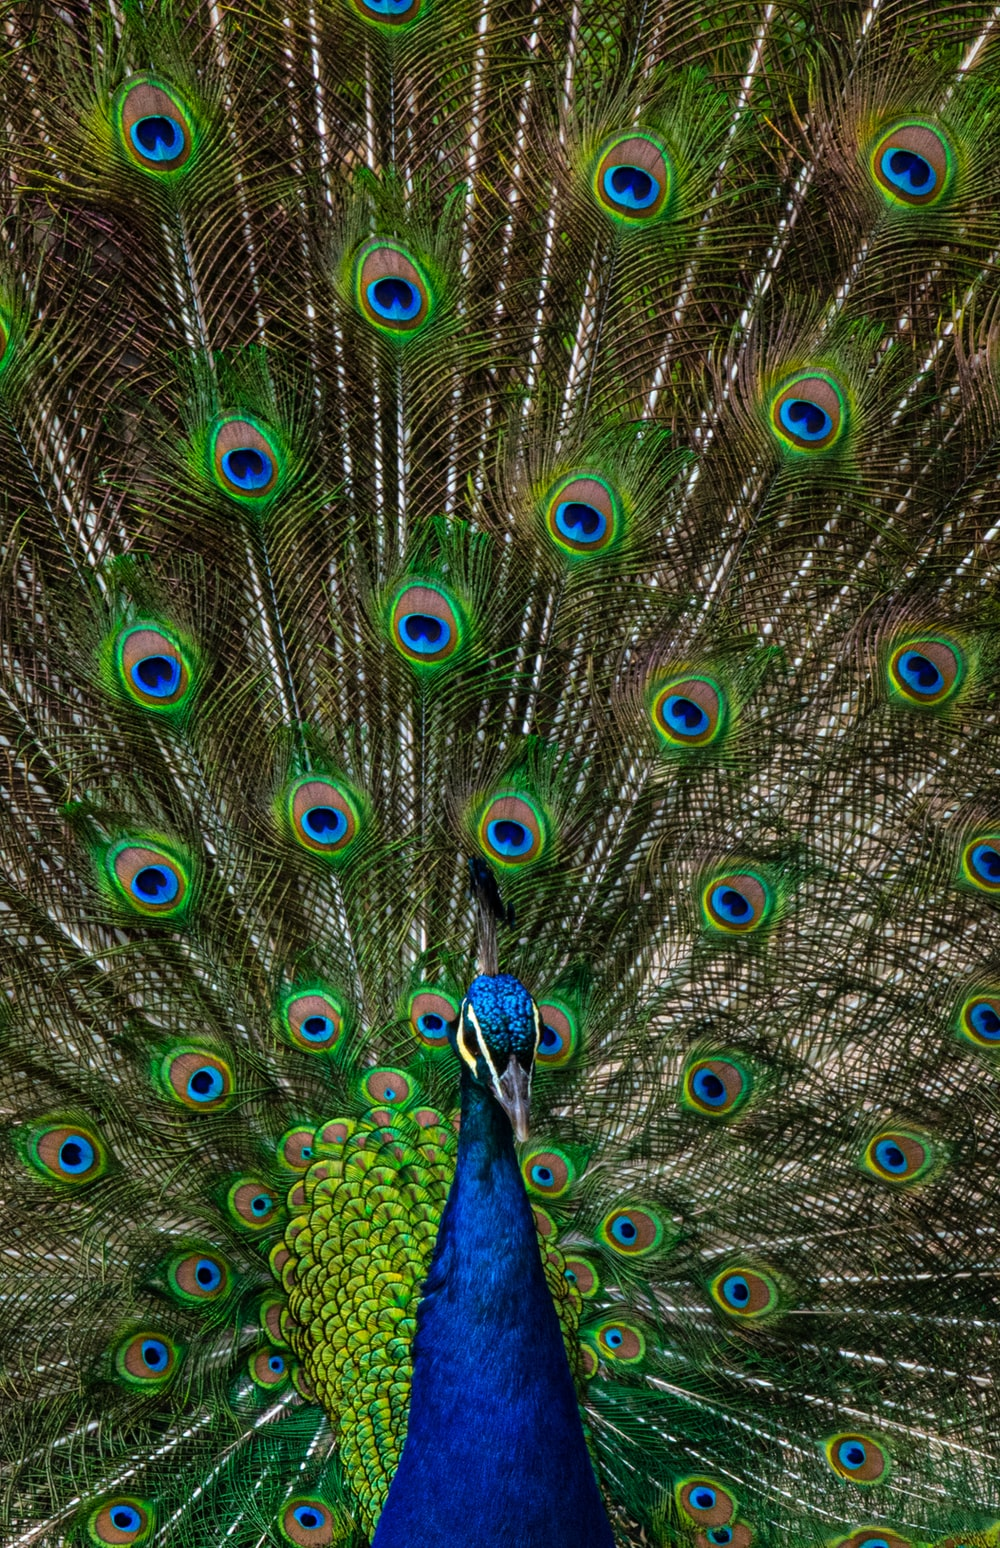 100 Peacock Pictures Hd Download Free Images On Unsplash